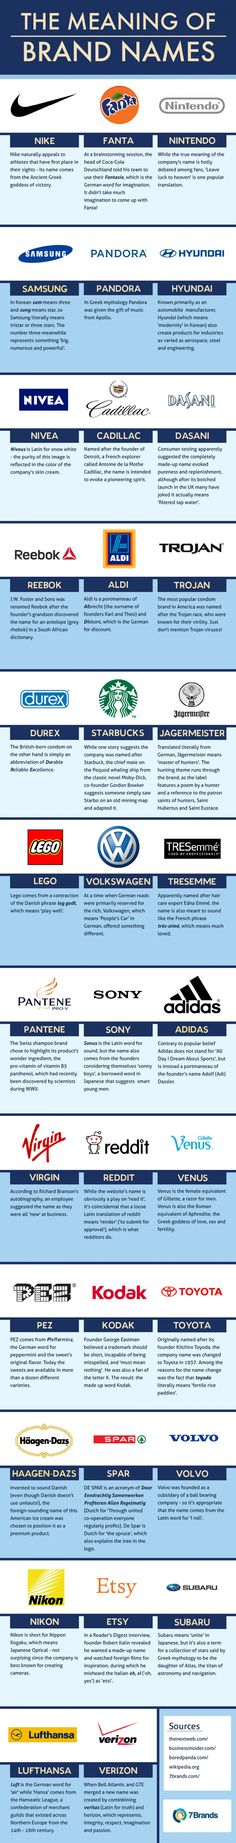 The Meaning of Brand Names #Infographic #infografía